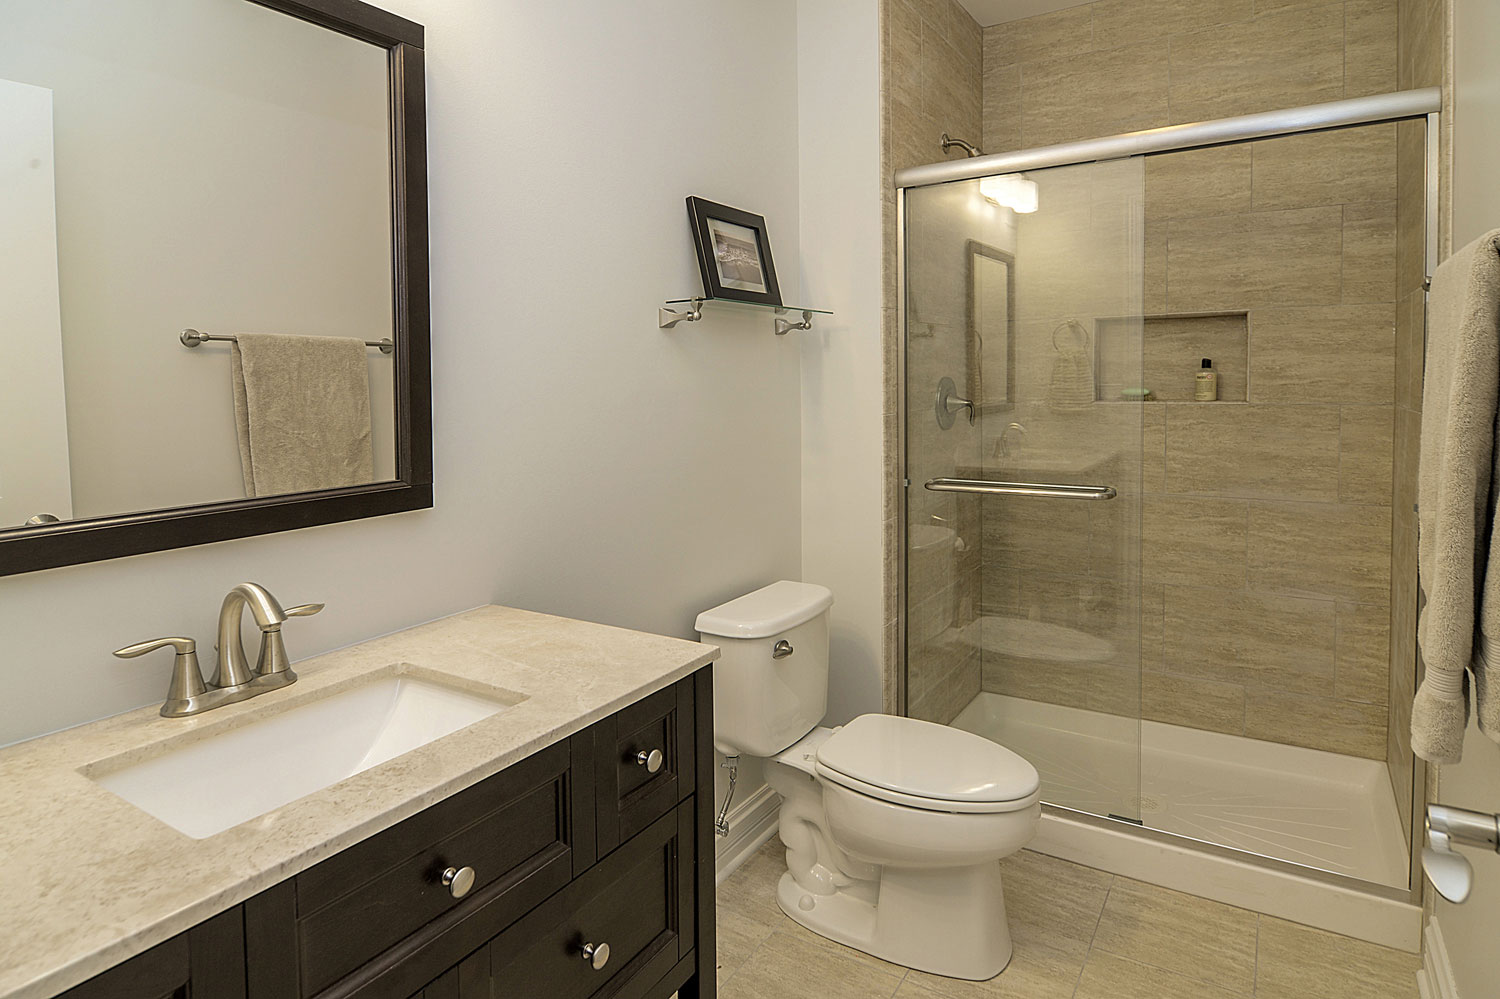 Steve emily 39 s hall bathroom remodel pictures home for Remodeling ideas for bathrooms